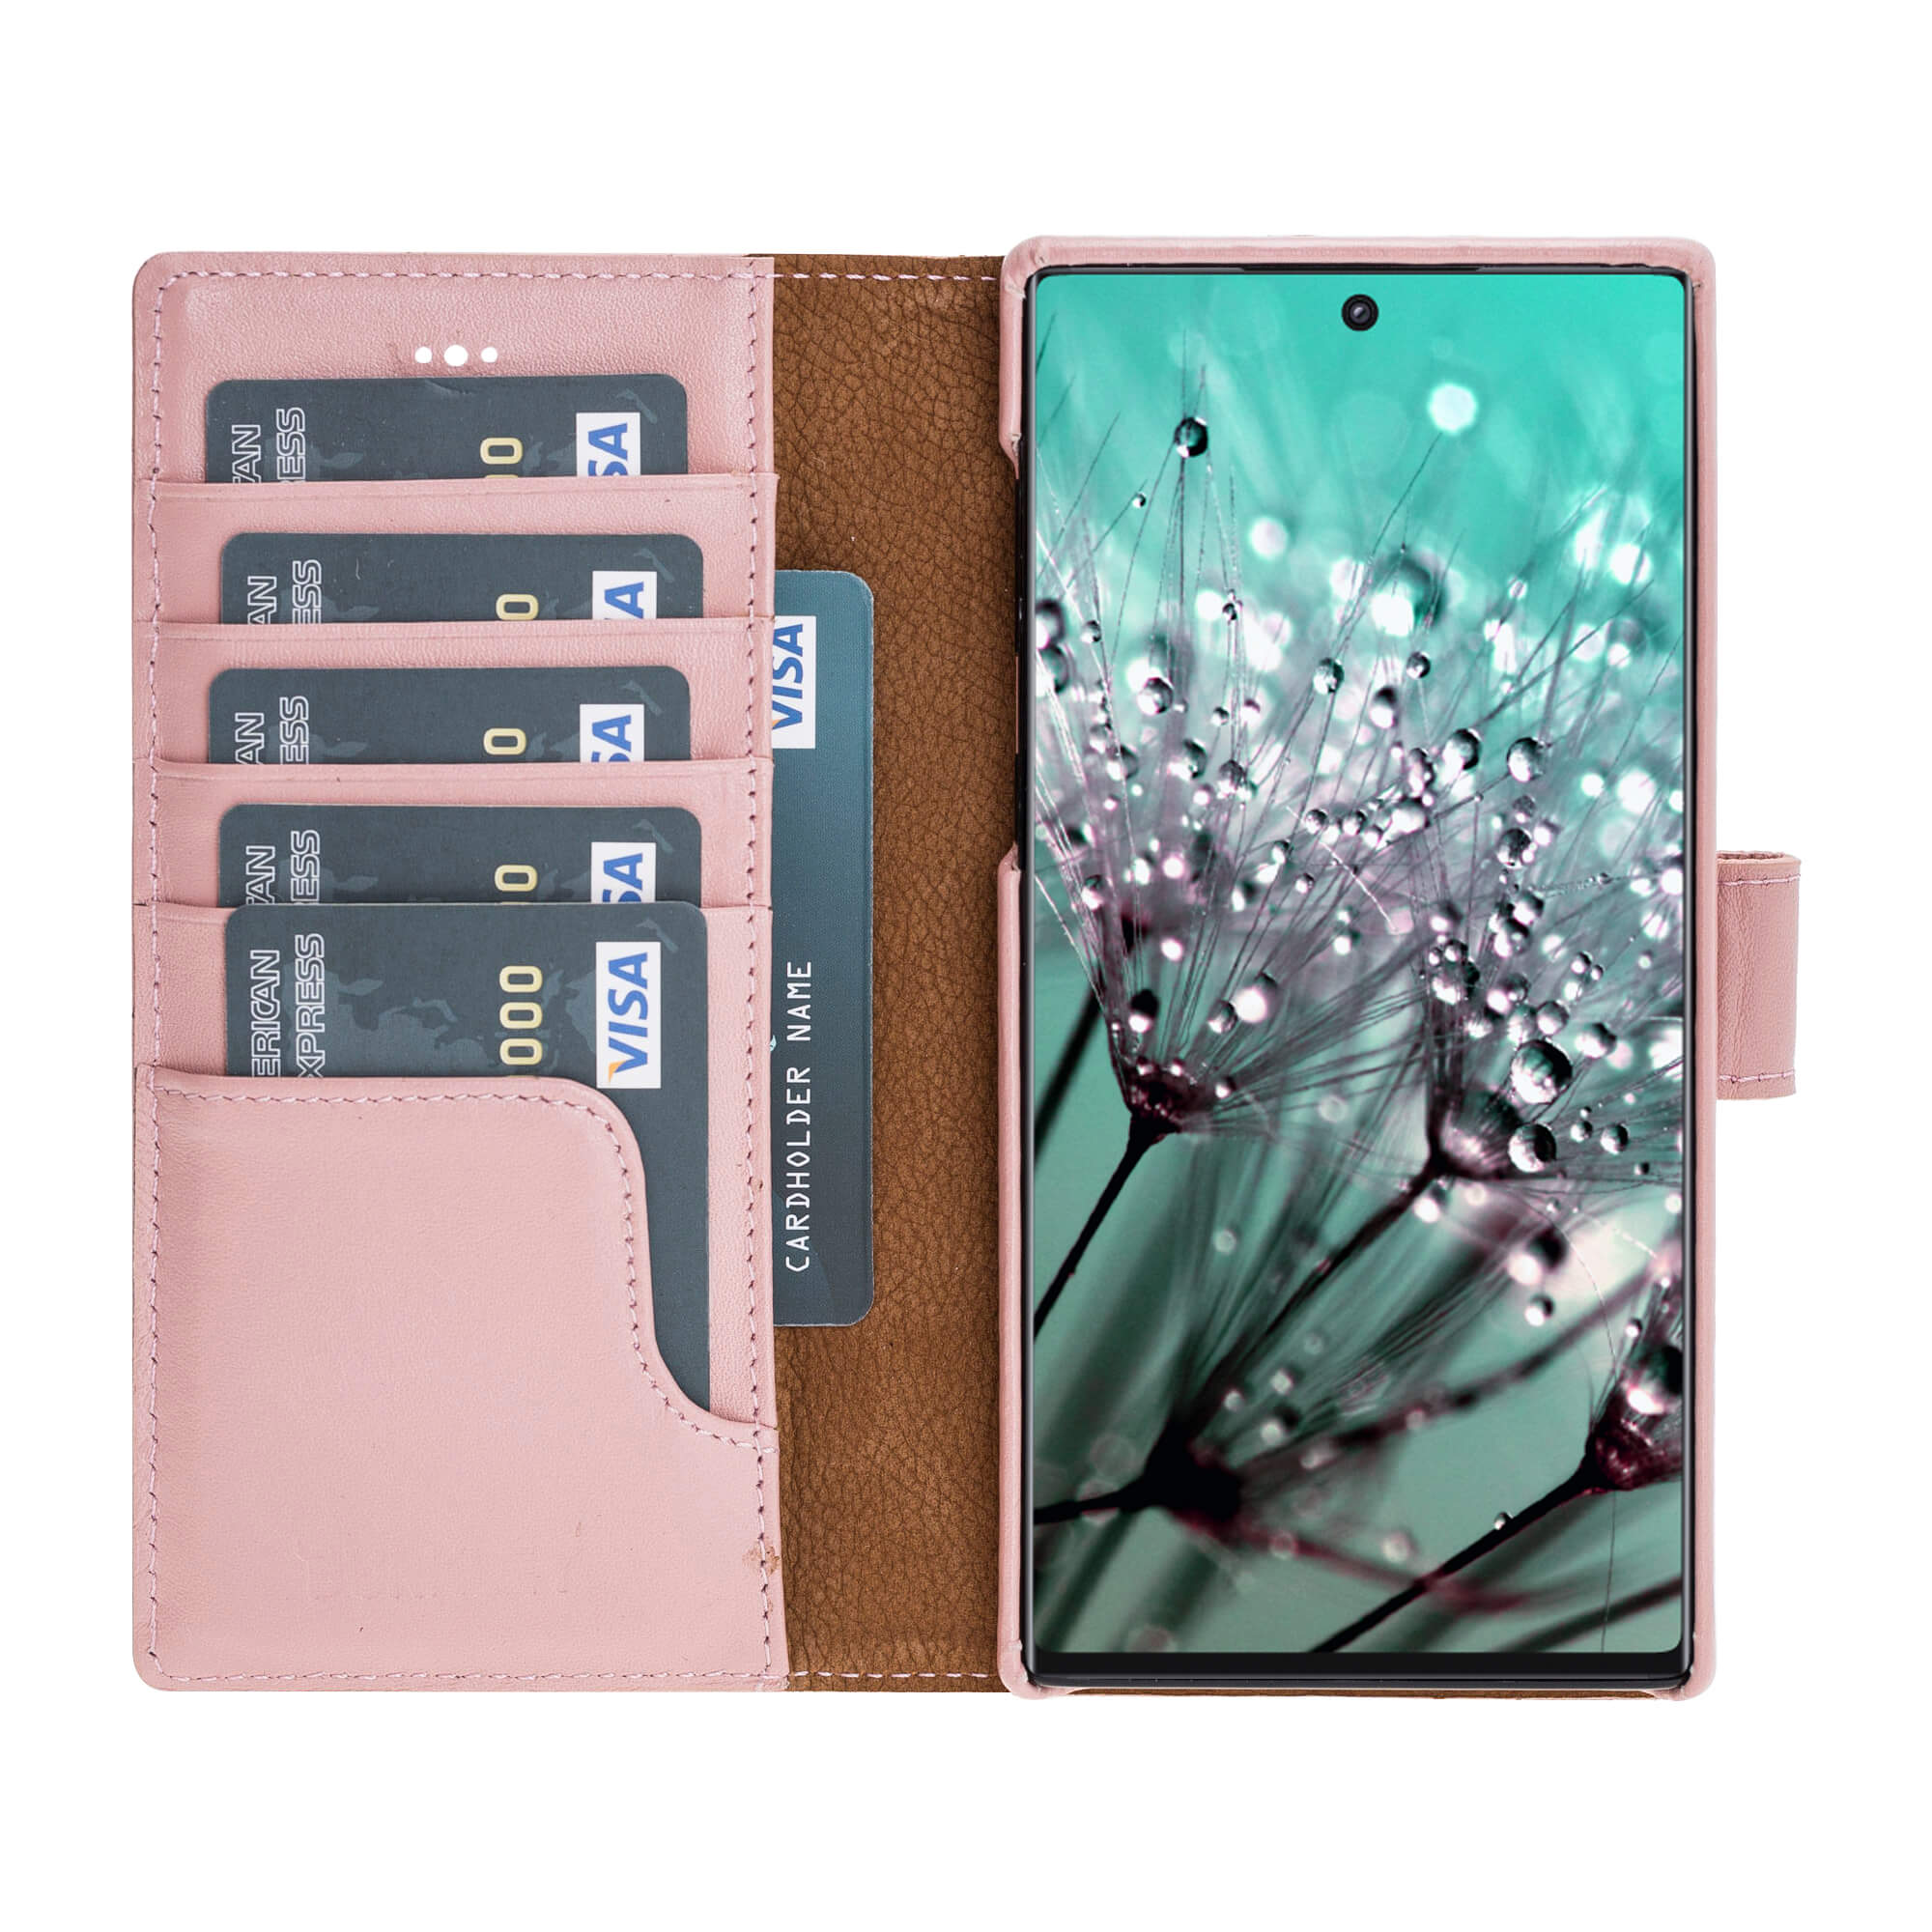 Pieno Full Leather Covered Magnetic Detachable Wallet Case for Samsung Galaxy NOTE 10